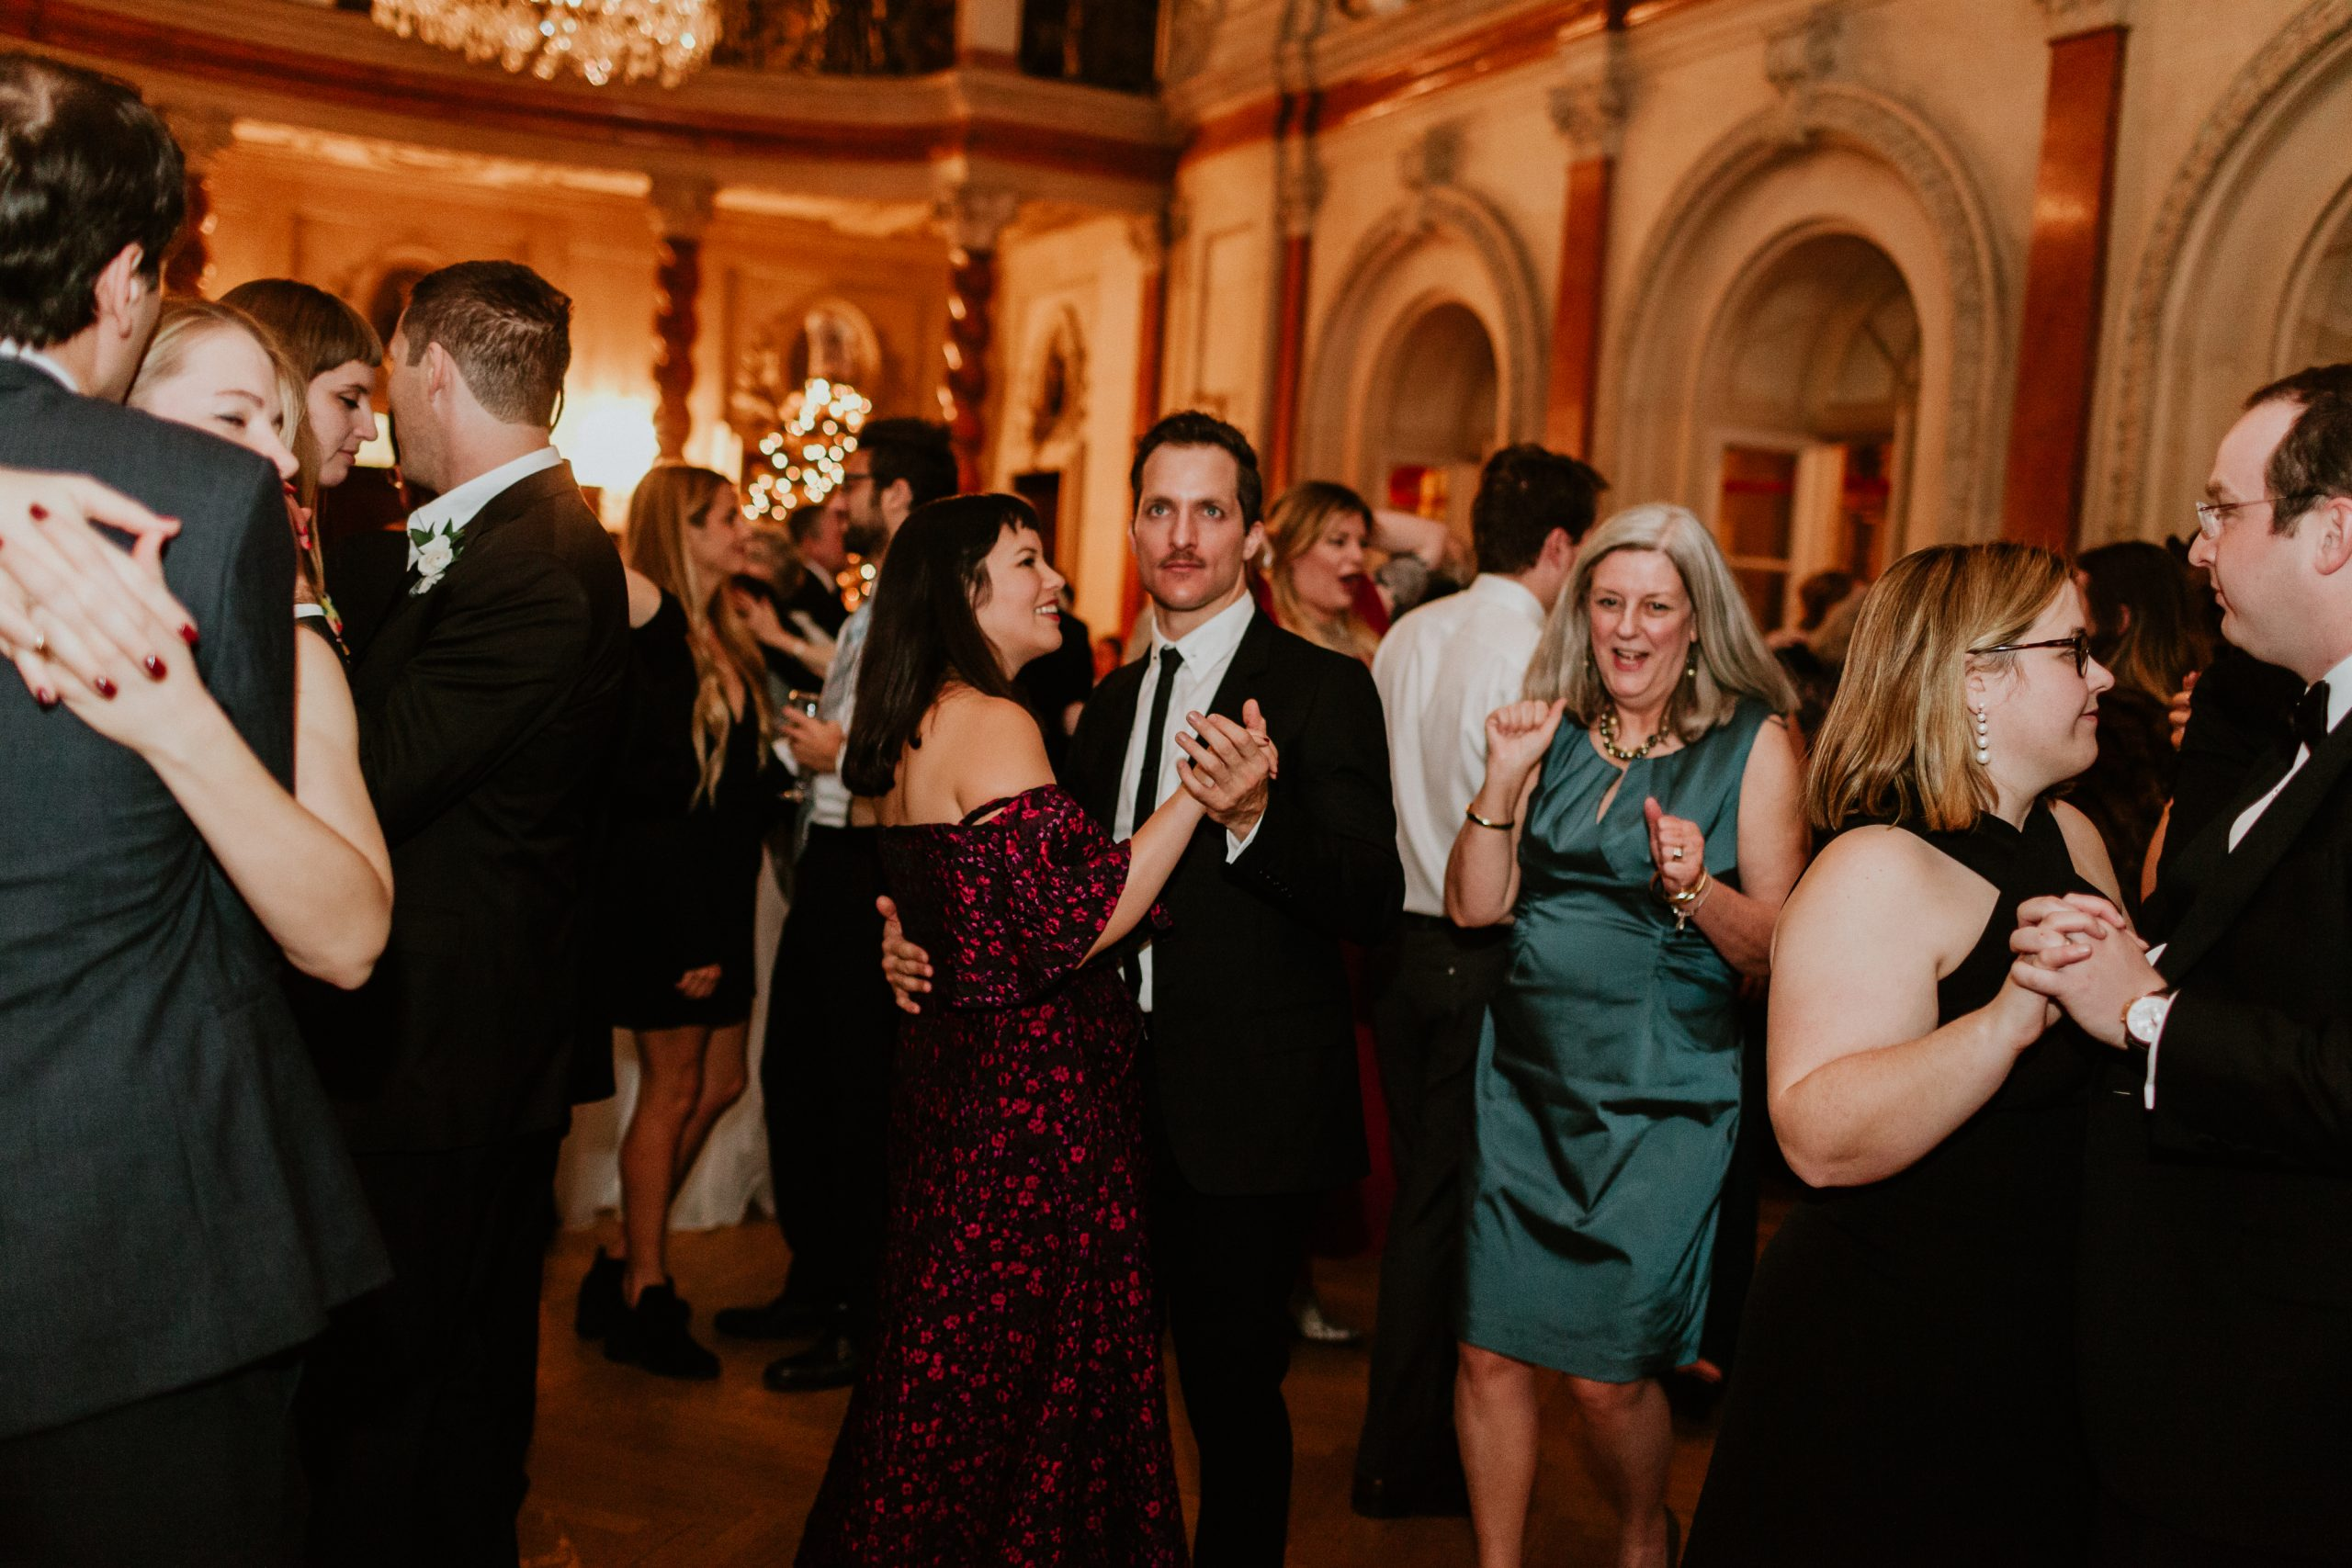 <h2>December dance event</h2>Photo by Chris Zachary.